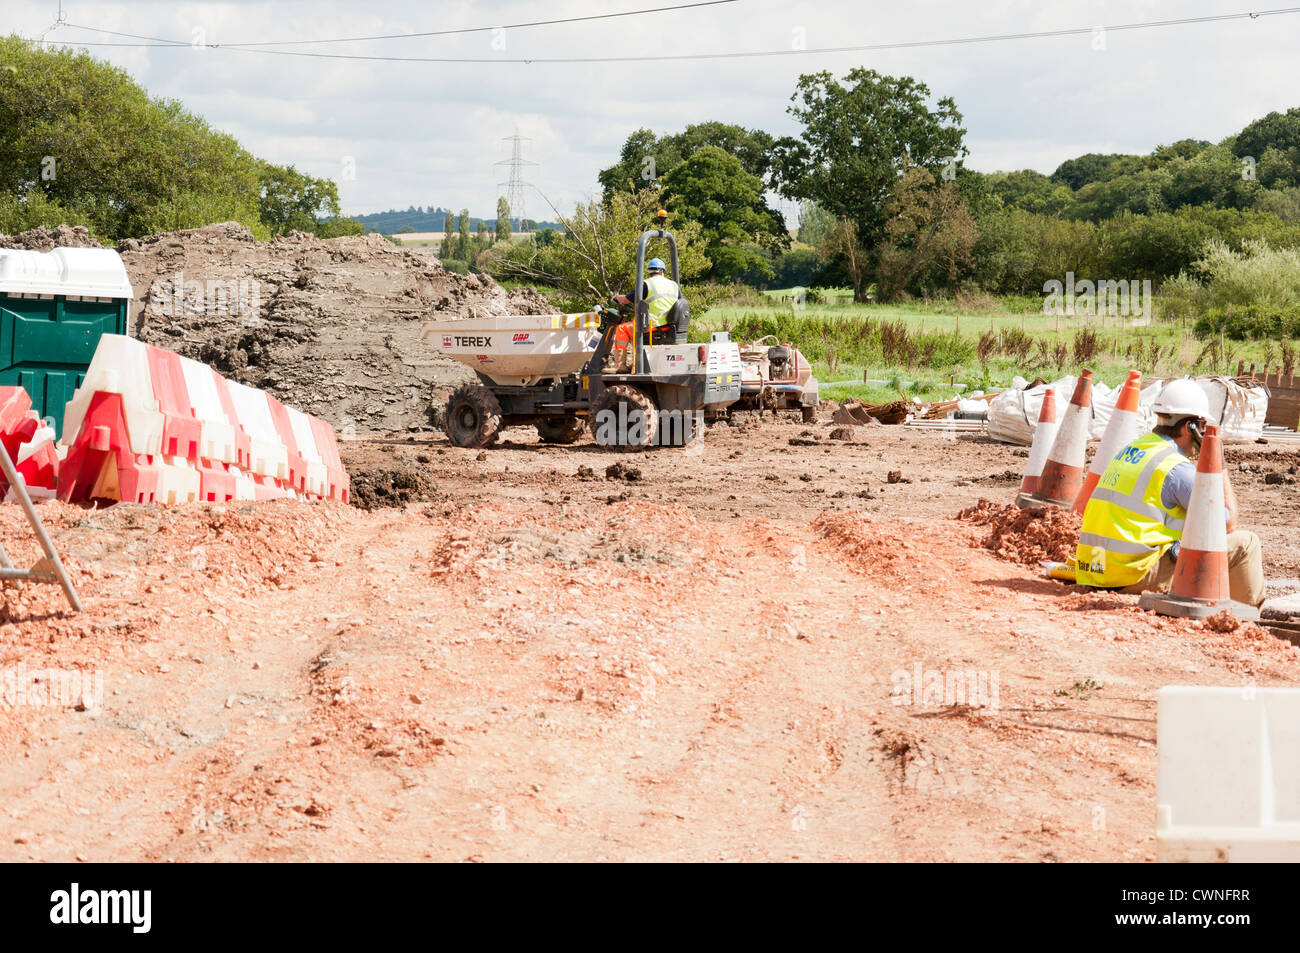 Flood defense civil engineering work being carried out by DEFRA Environment Agency at Stoke Canon, near Exeter Devon - Stock Image